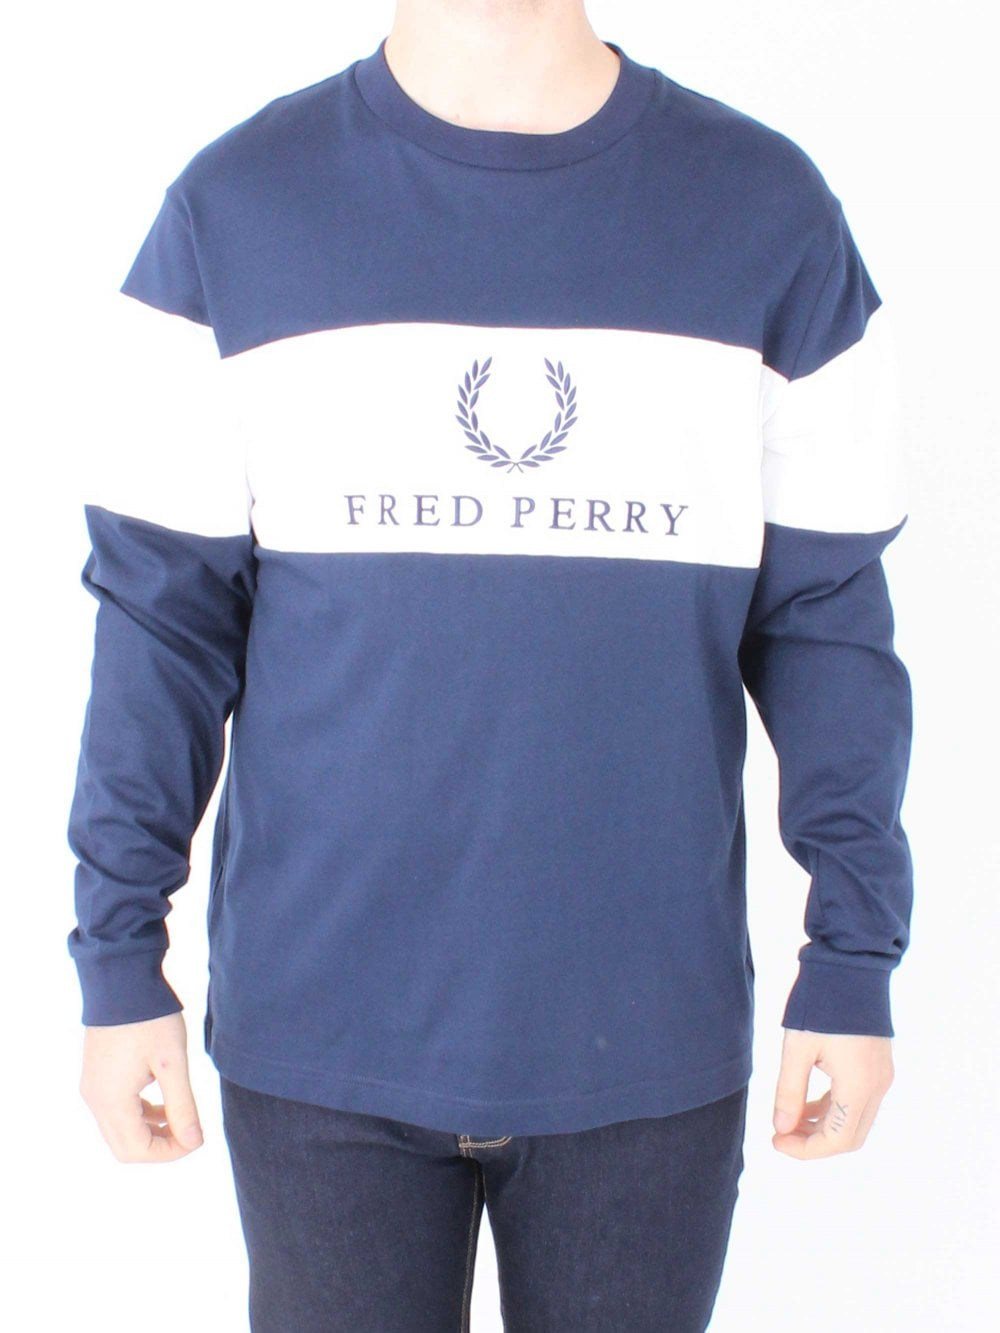 f0cefa82 Fred Perry Sports Contrast Panel T.Shirt in Navy/White | Northern ...